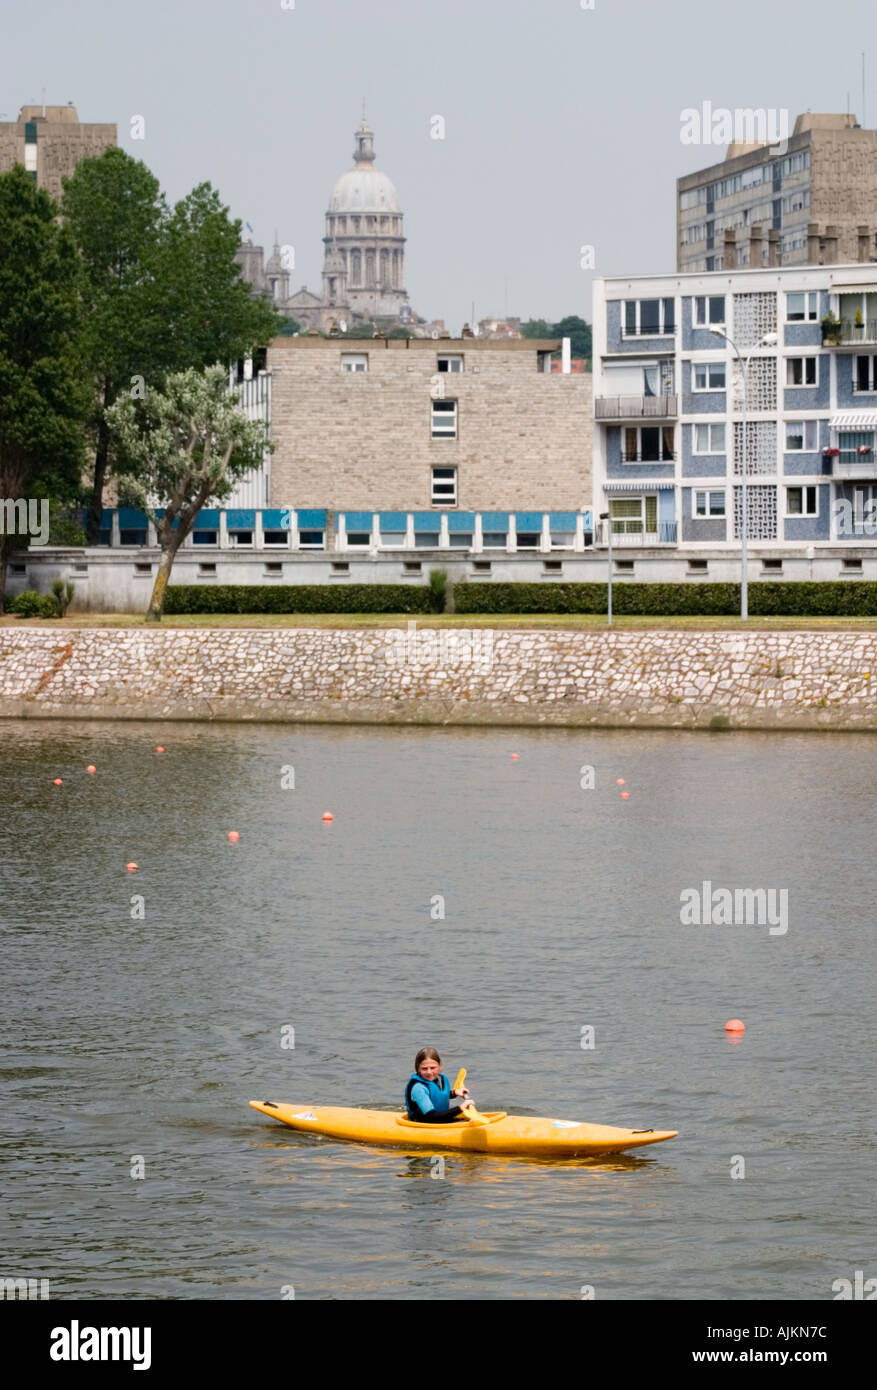 Schoolchild canoeing on river Boulogne sur Mer with cathedral dome in background - Stock Image